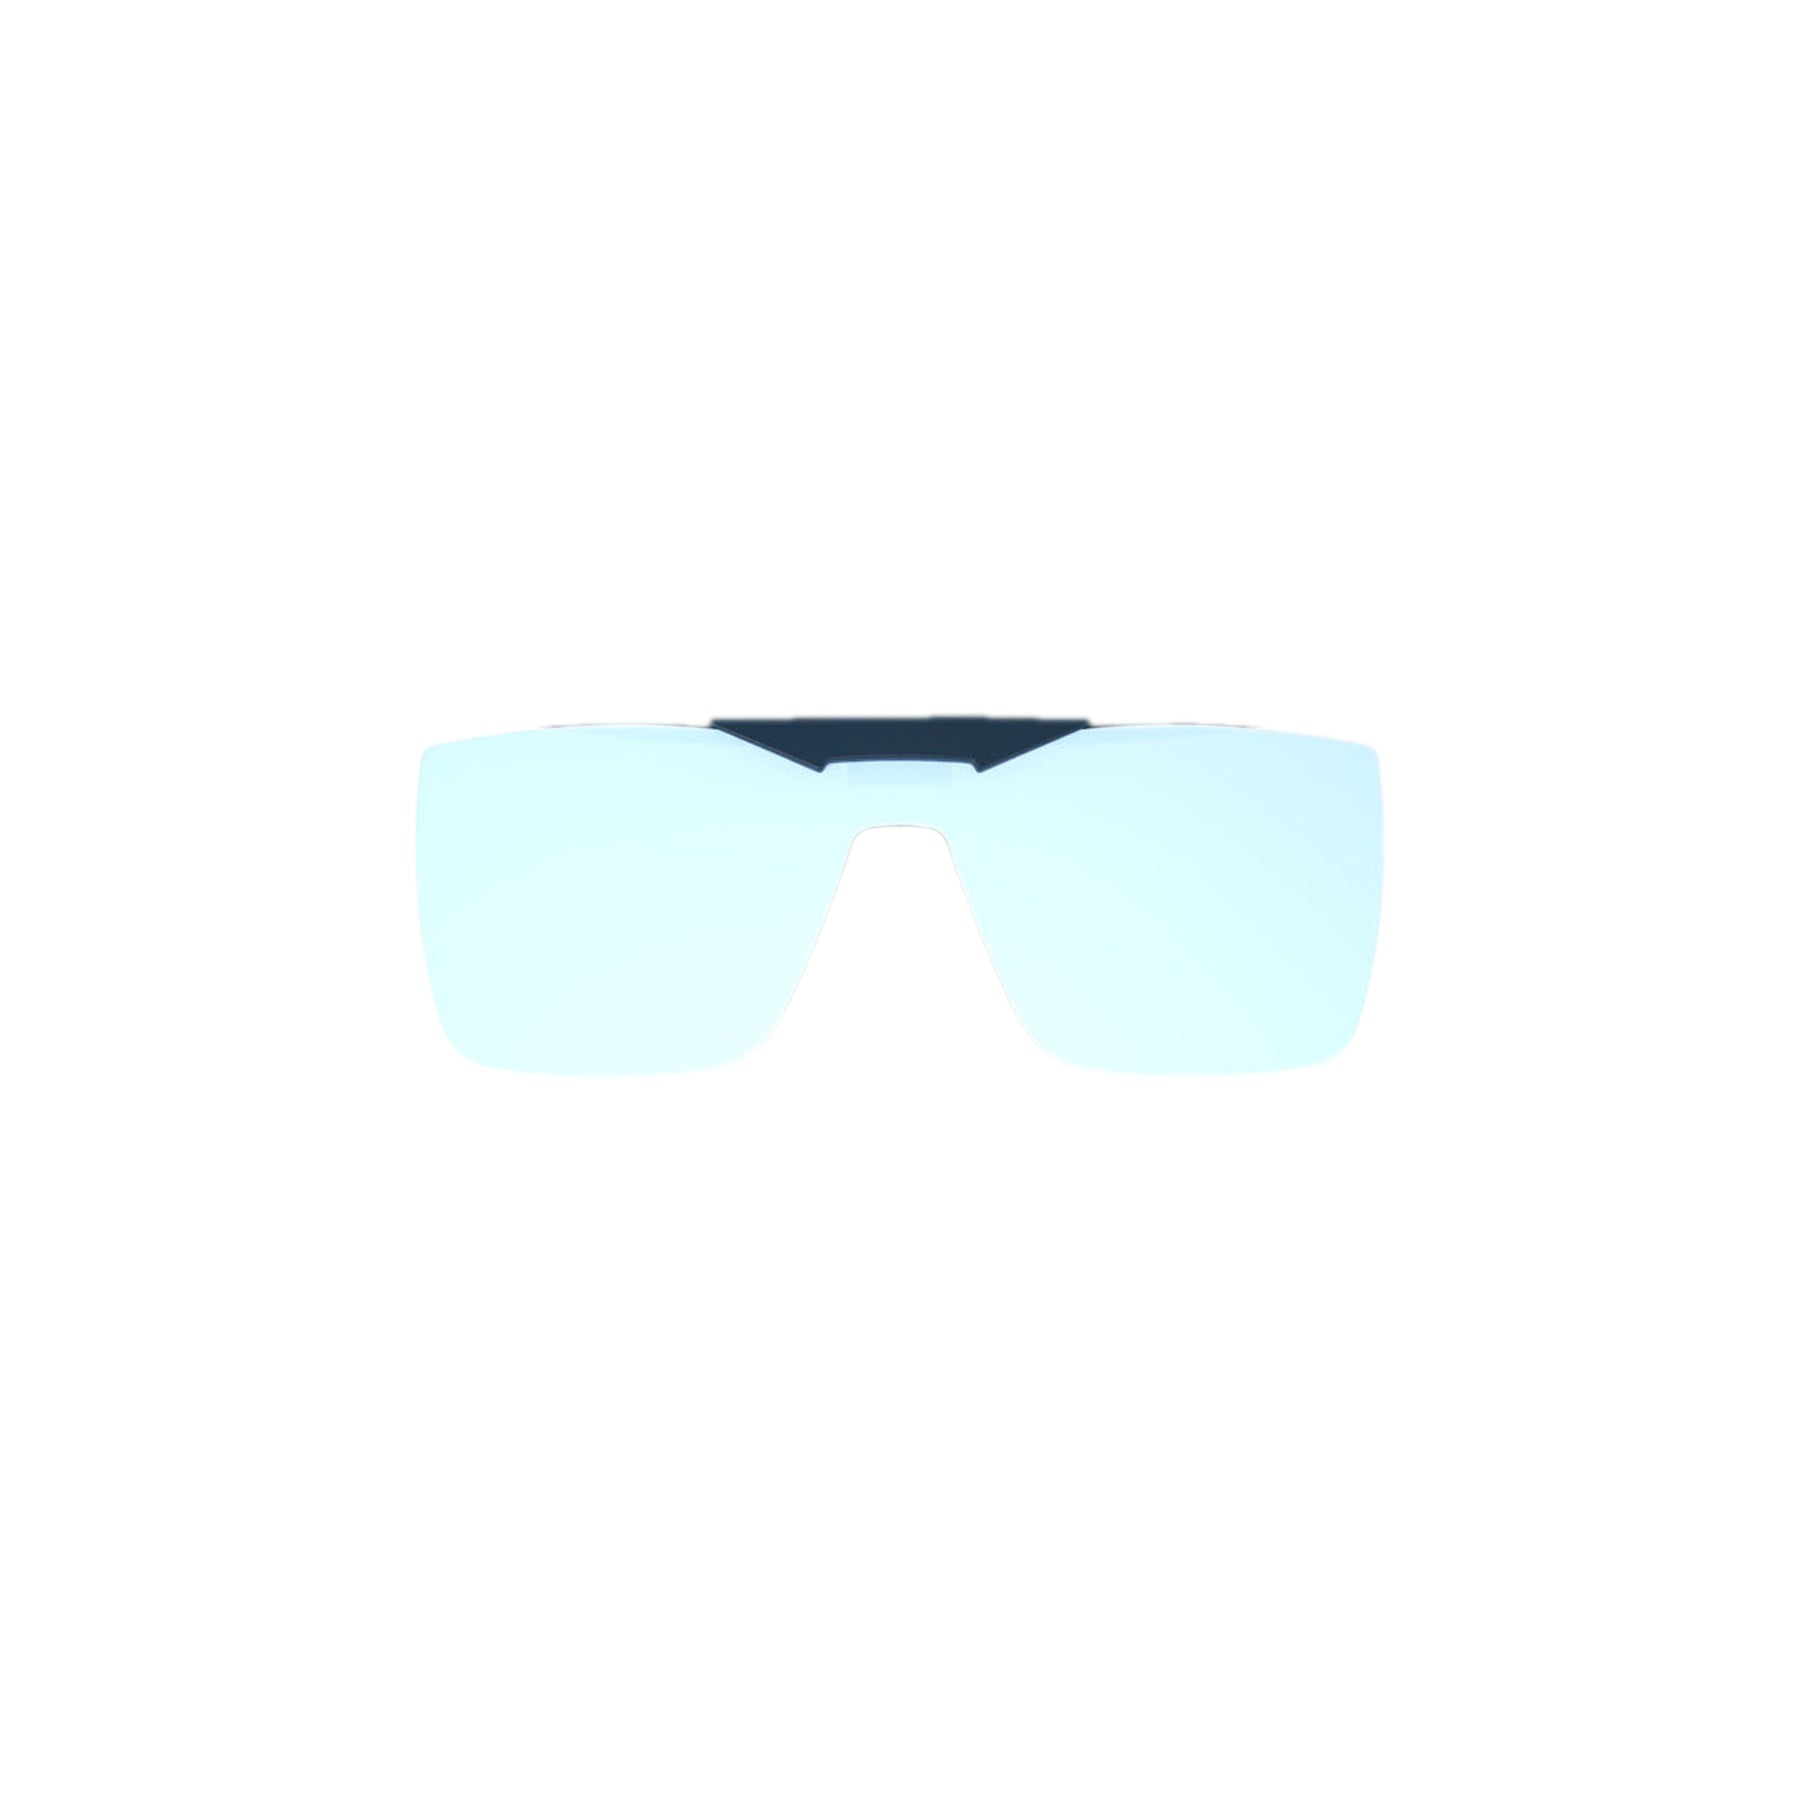 Inkas Flip-Up Sunglass Clips